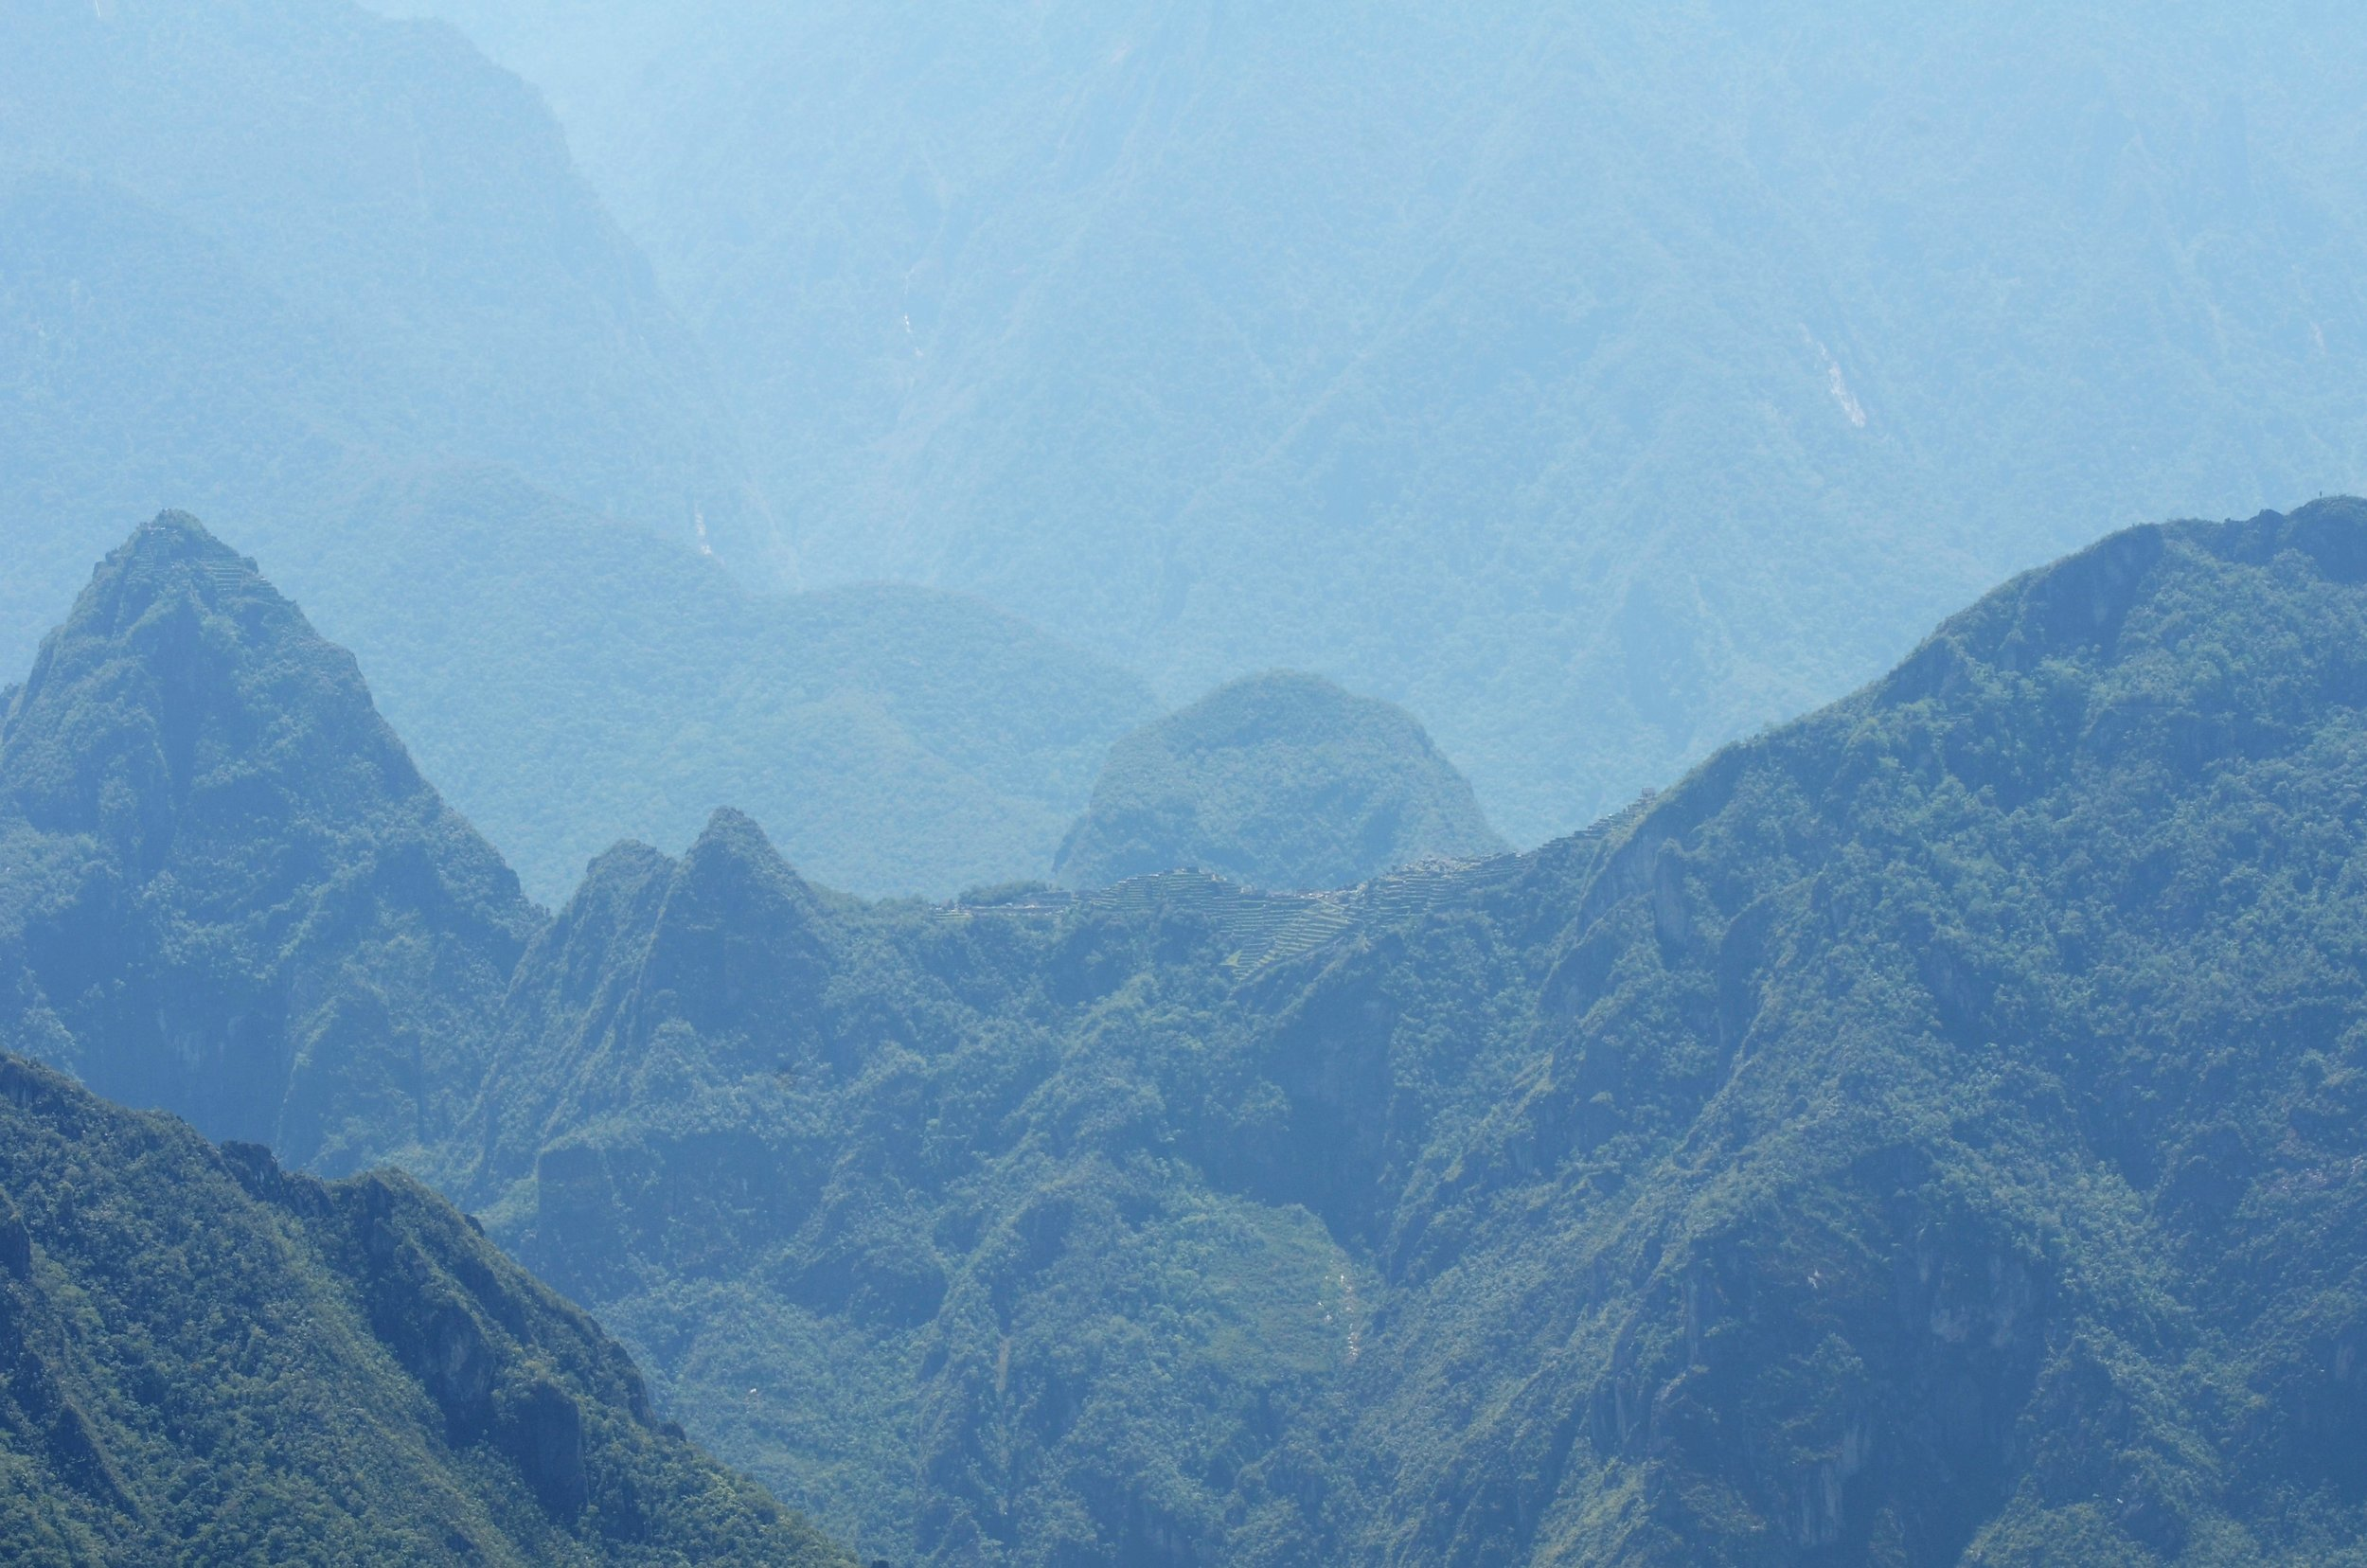 What you can see with your eye... (the peak on the left is Waynu Picchu - more on this later)